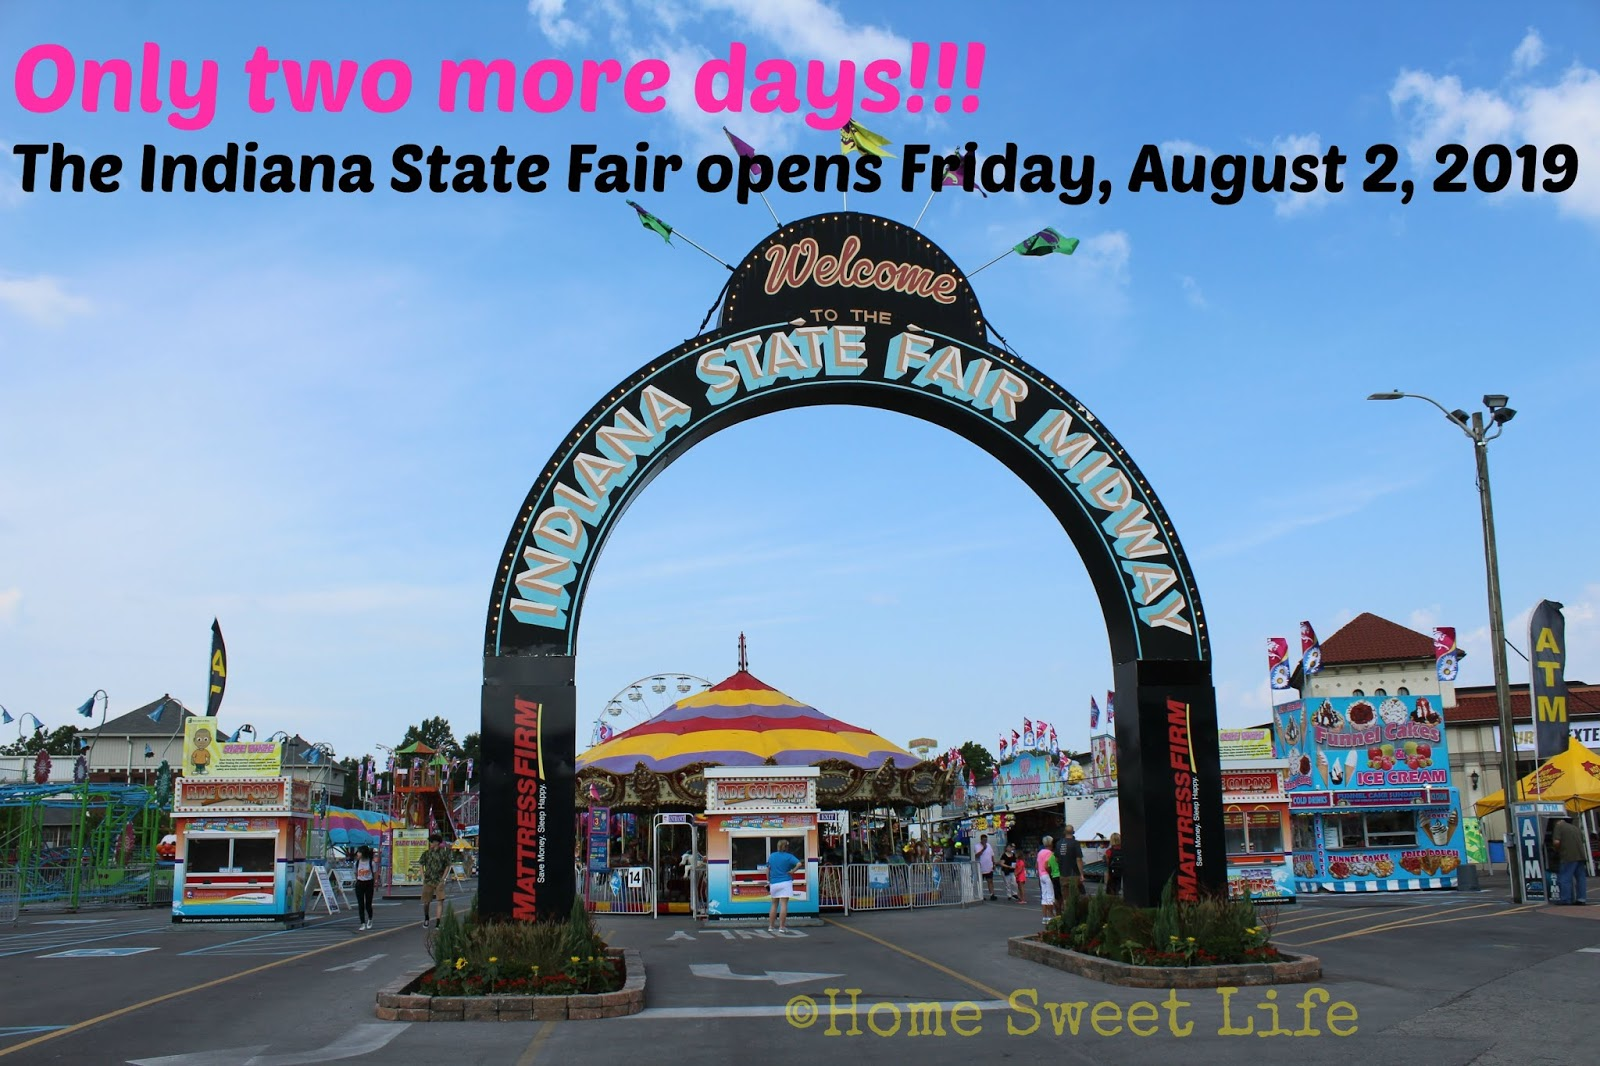 Home Sweet Life: Indiana State Fair begins Friday!